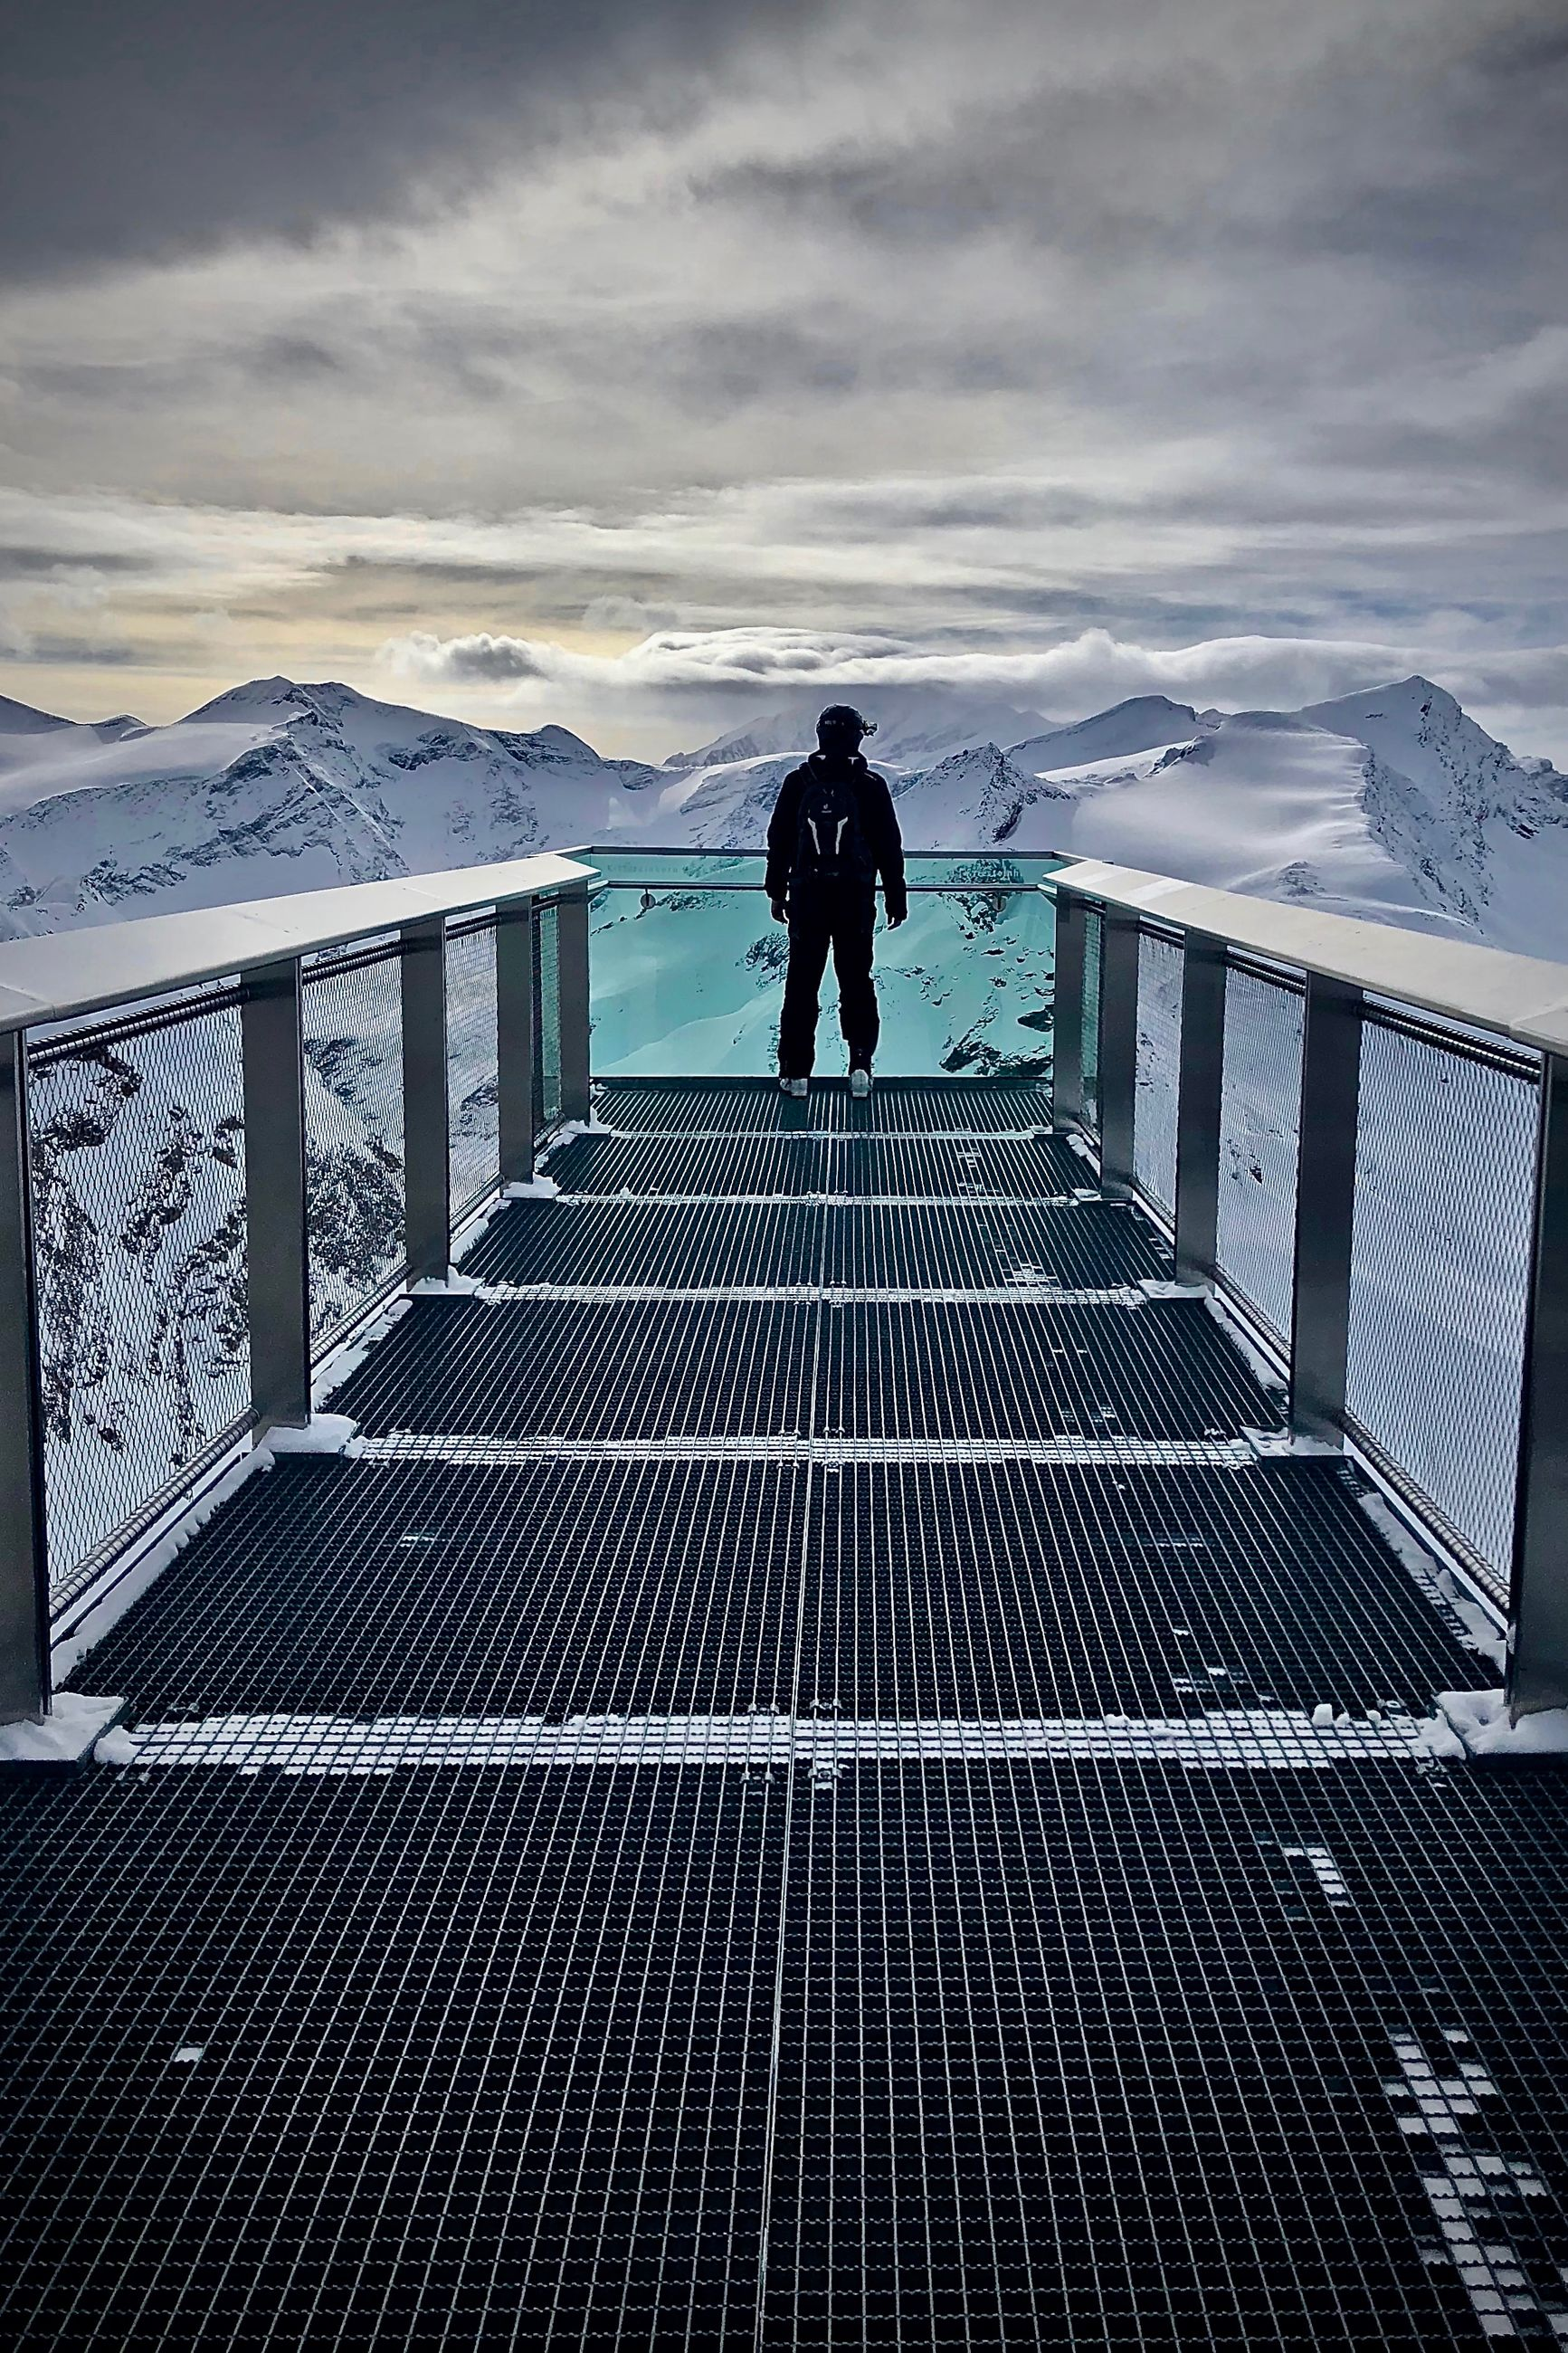 FULL LENGTH OF PERSON STANDING ON RAILING AGAINST MOUNTAIN